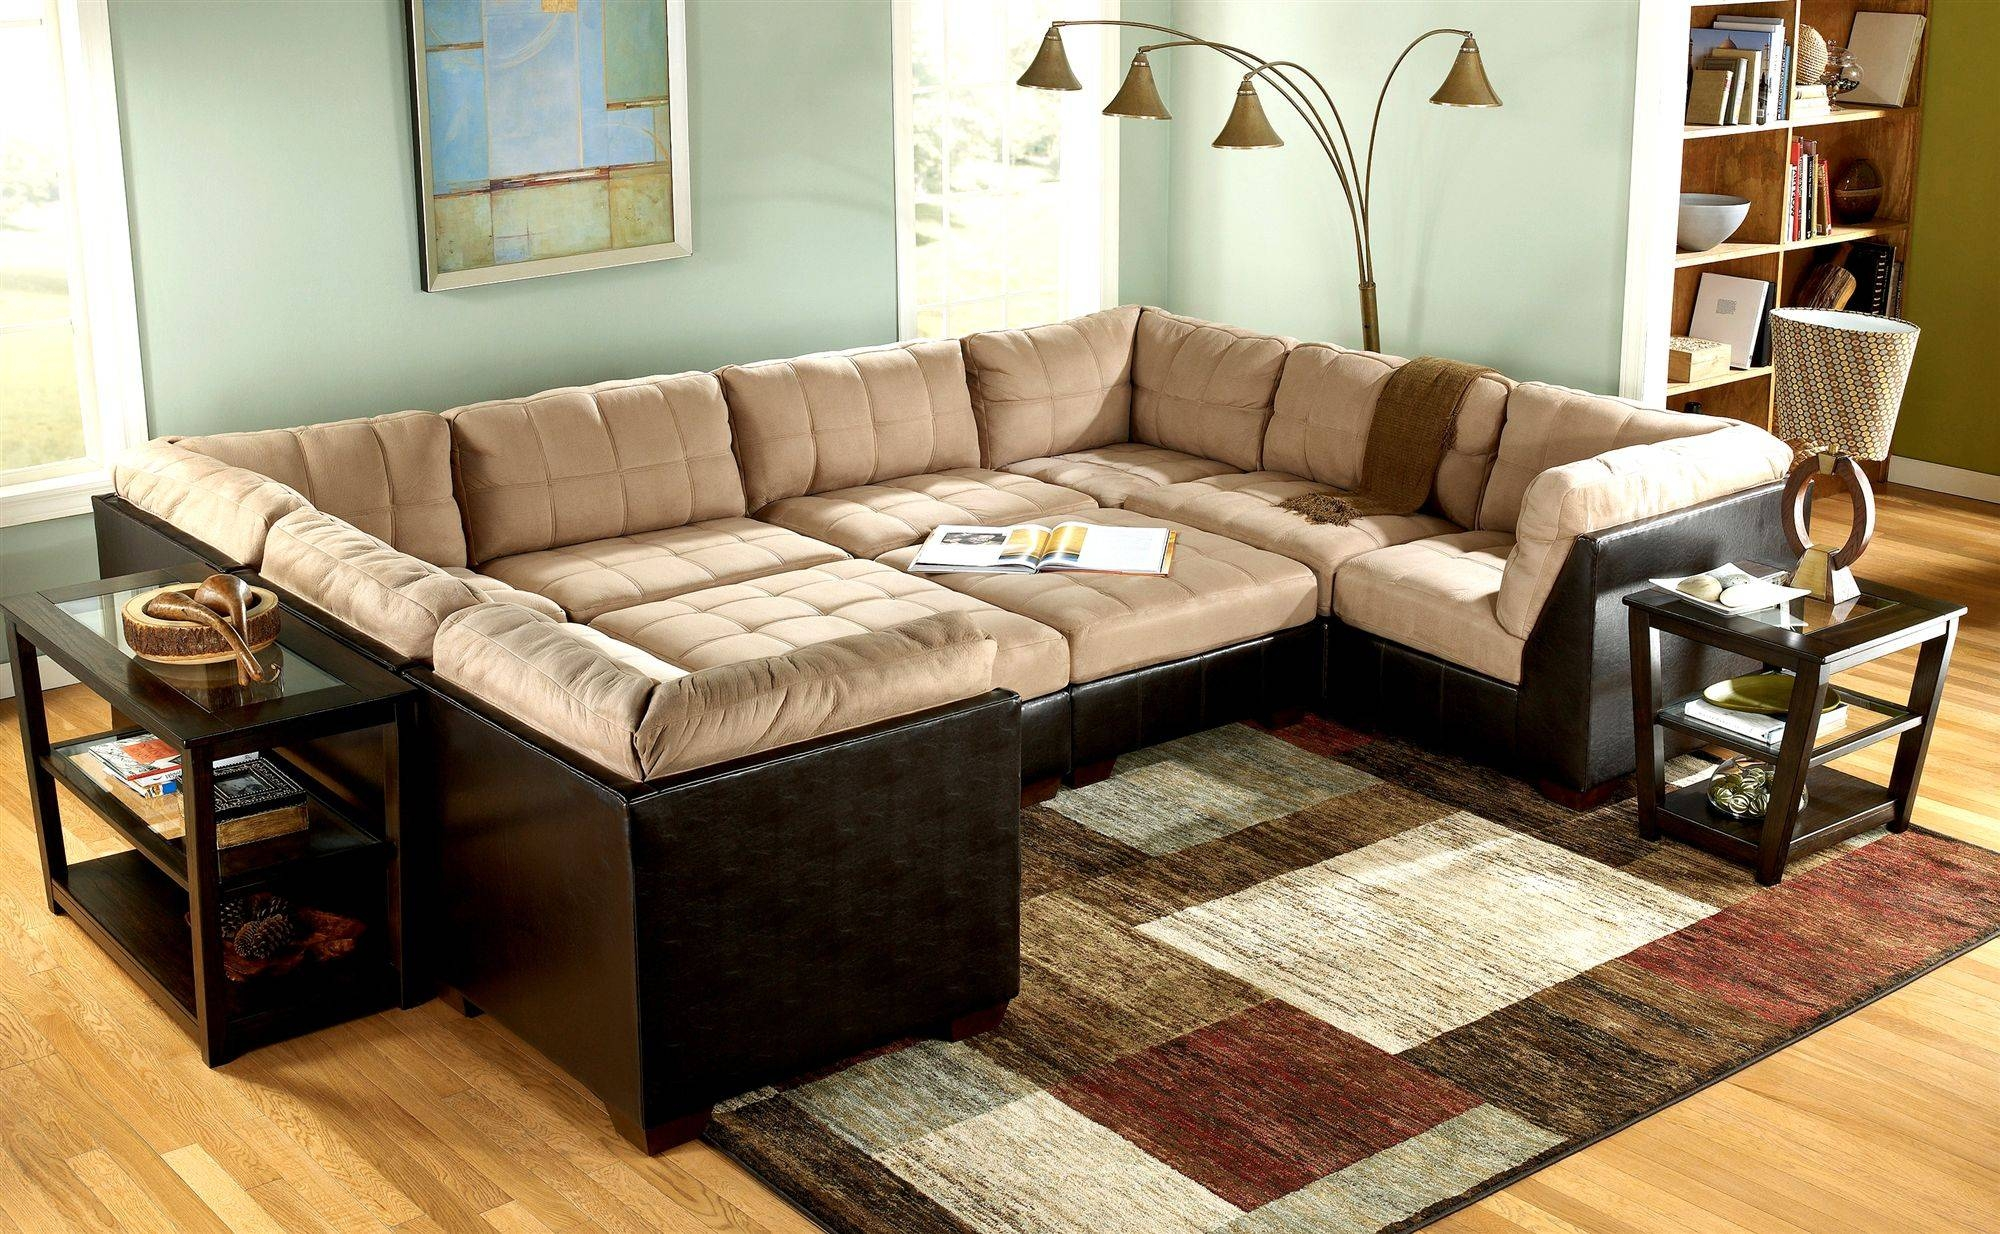 Sofa: Cool Couches For Provides A Warm To Comfortable Feel And Low for Sectional Sofa With Oversized Ottoman (Image 21 of 30)